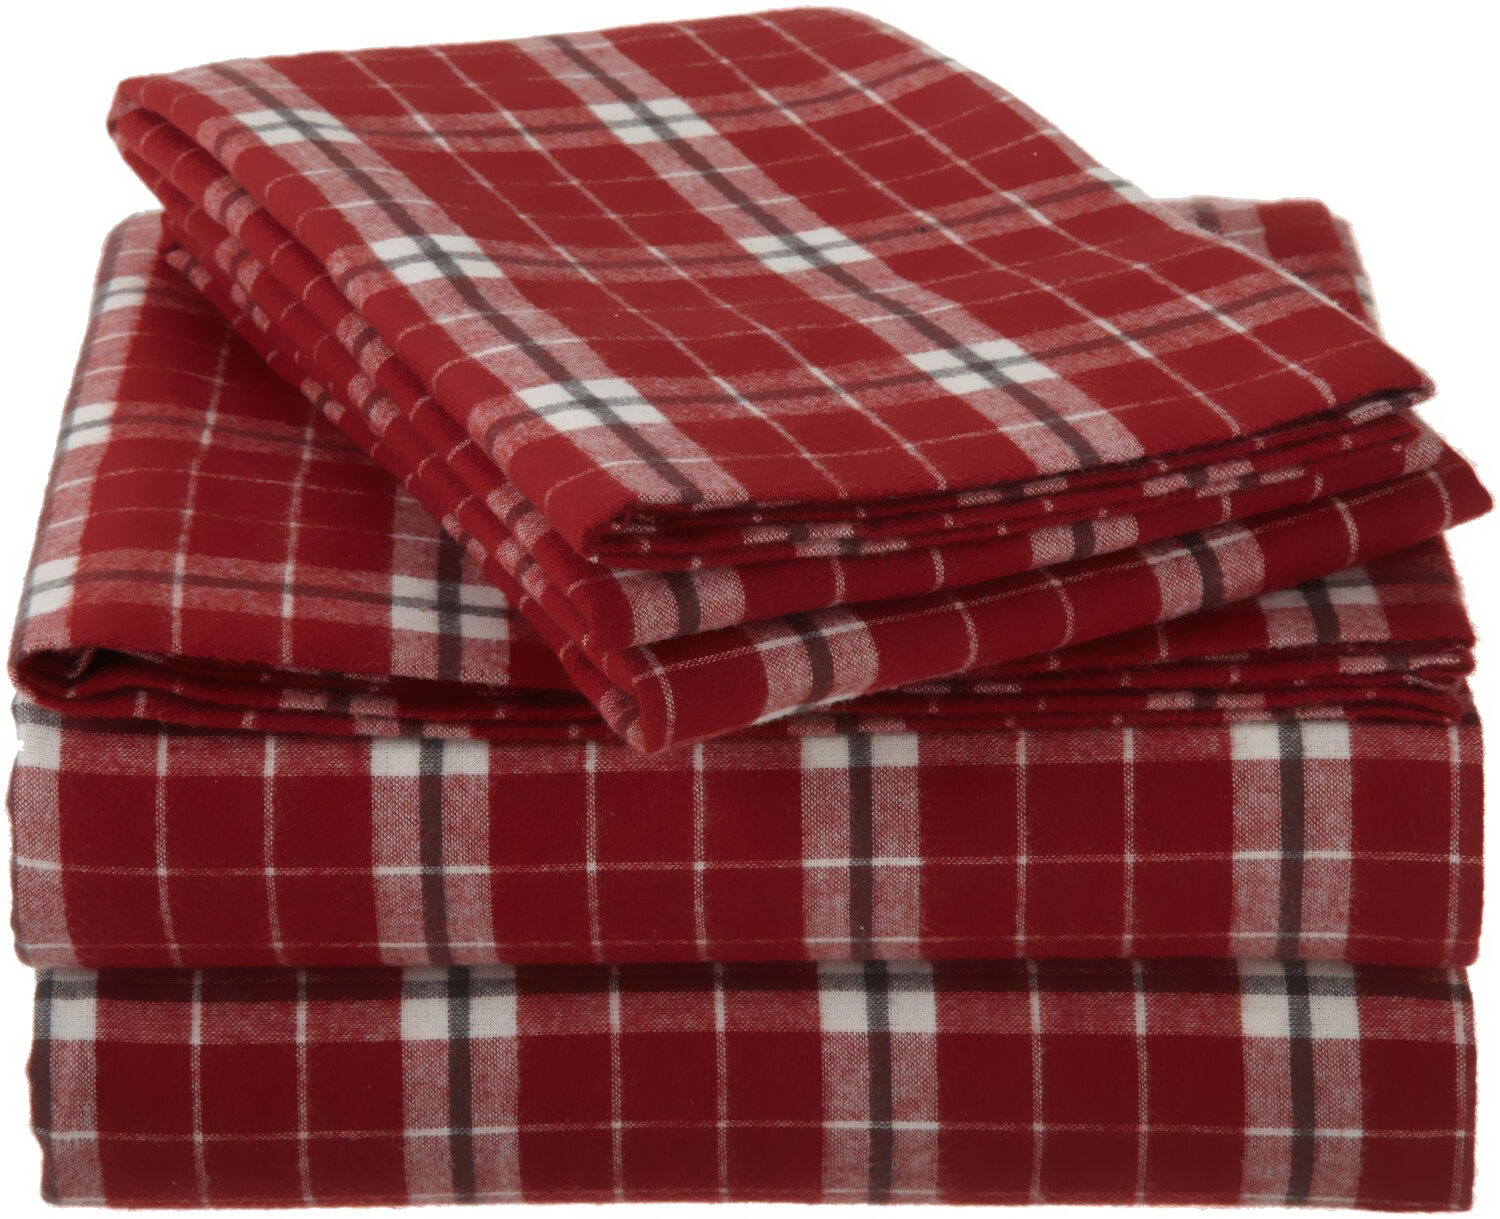 Top 10 Bed Sheets Ebay